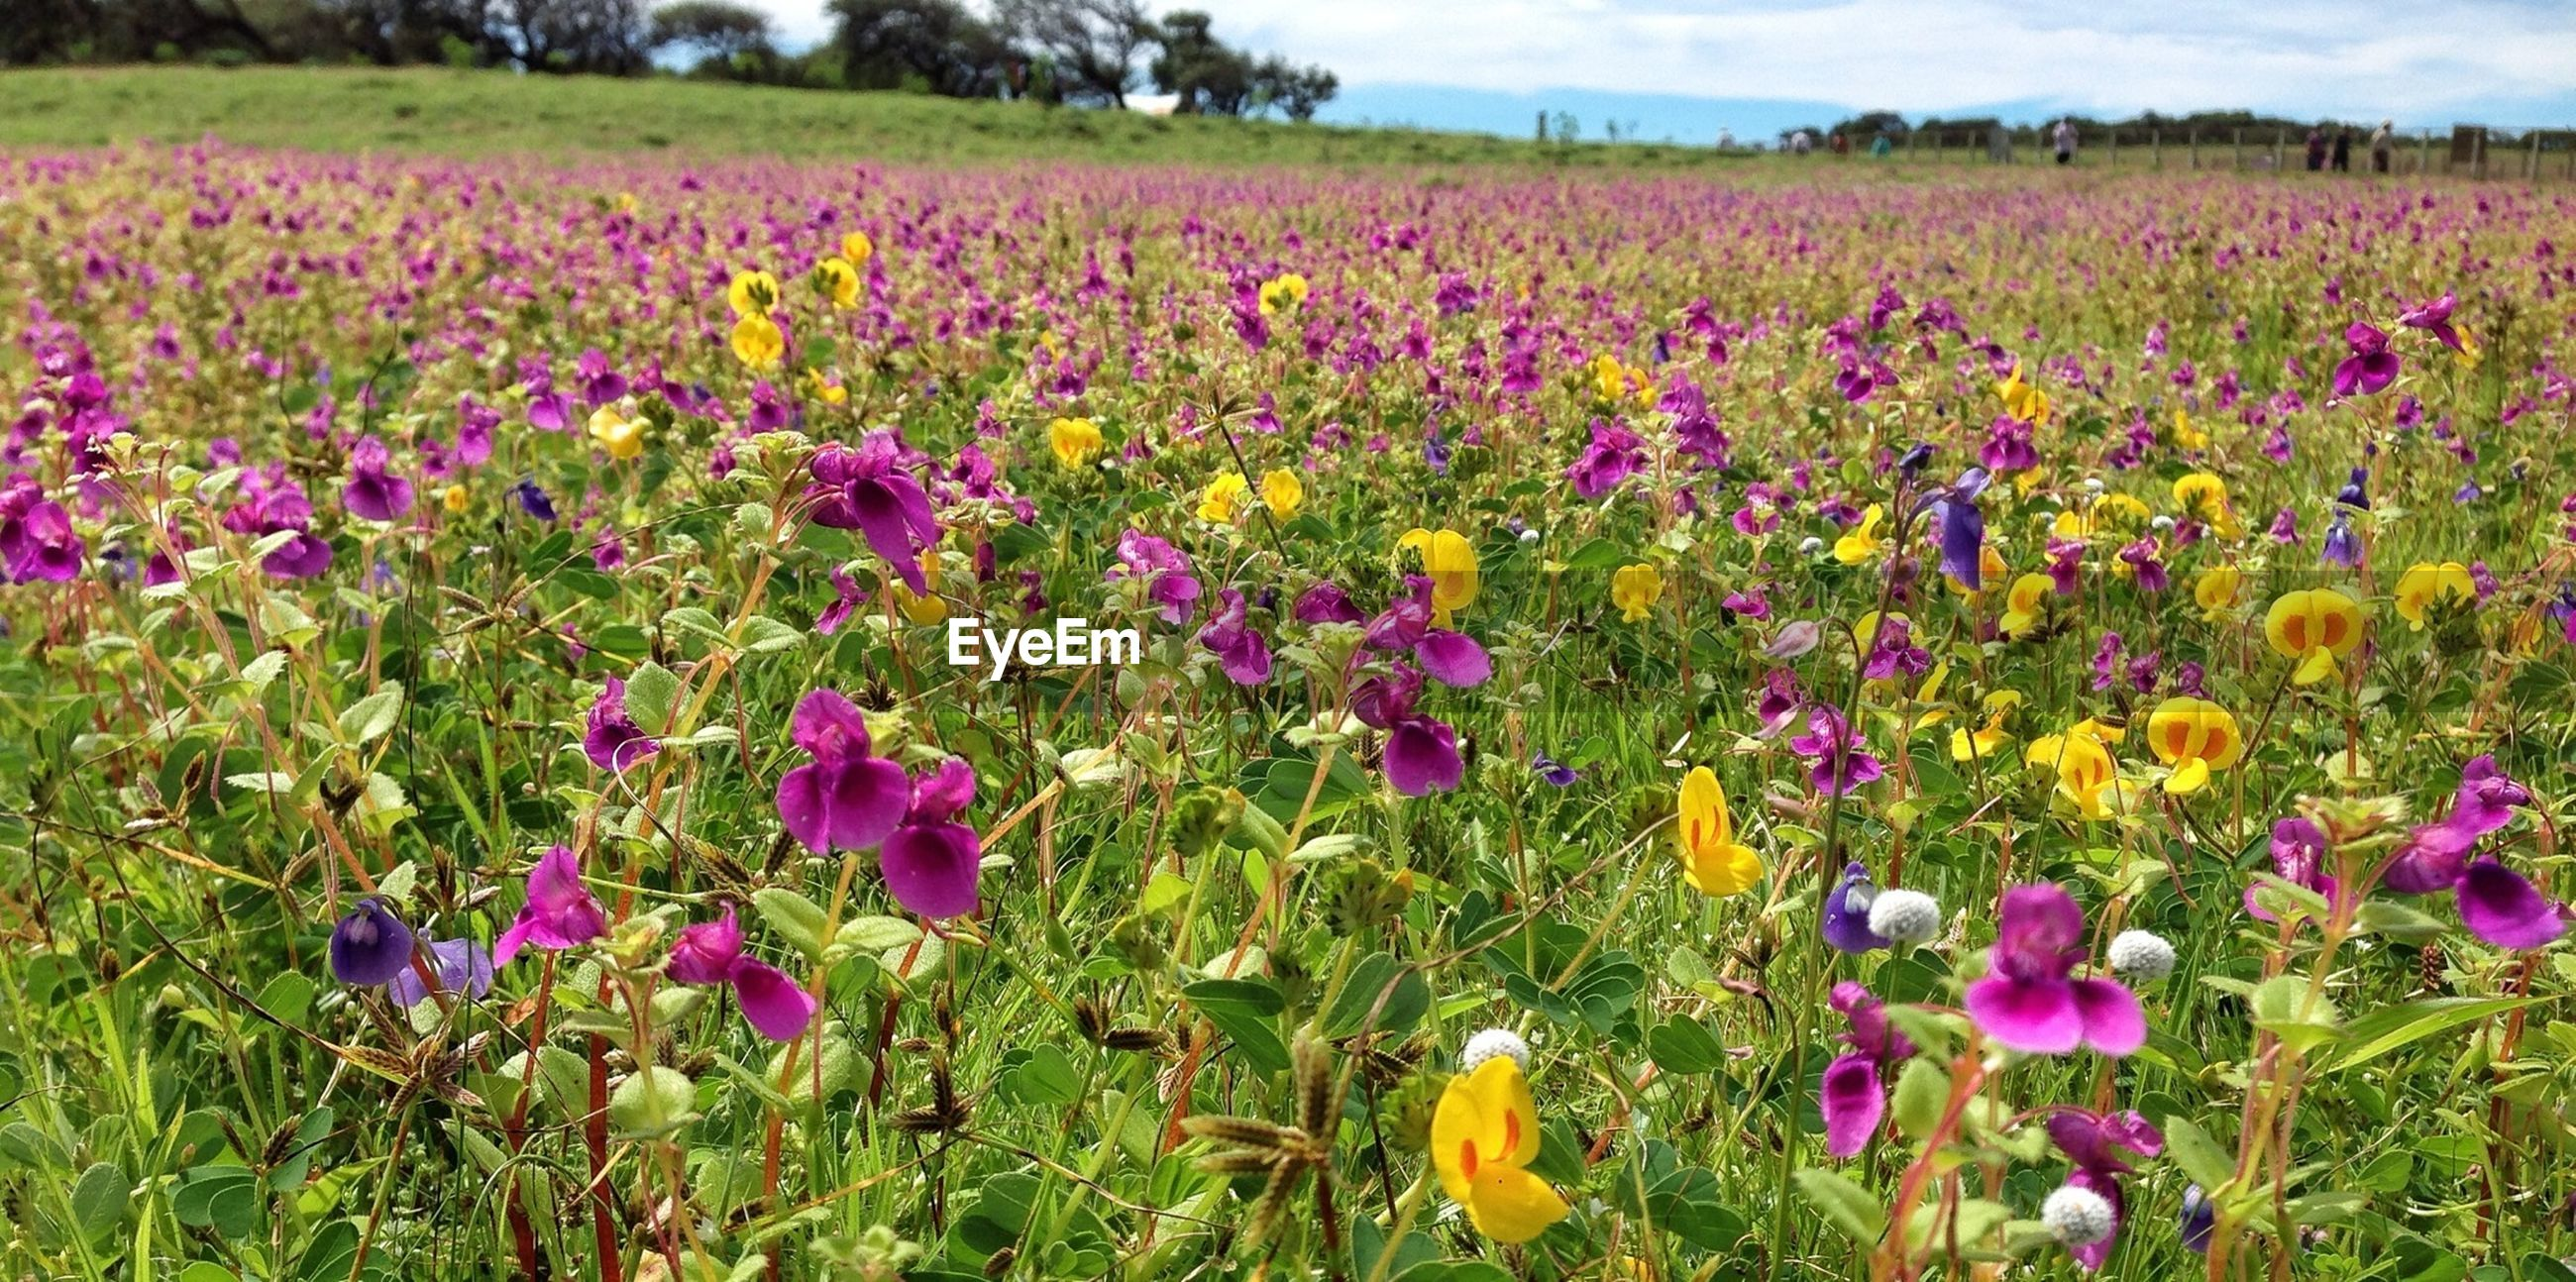 View of colorful flowers growing in field